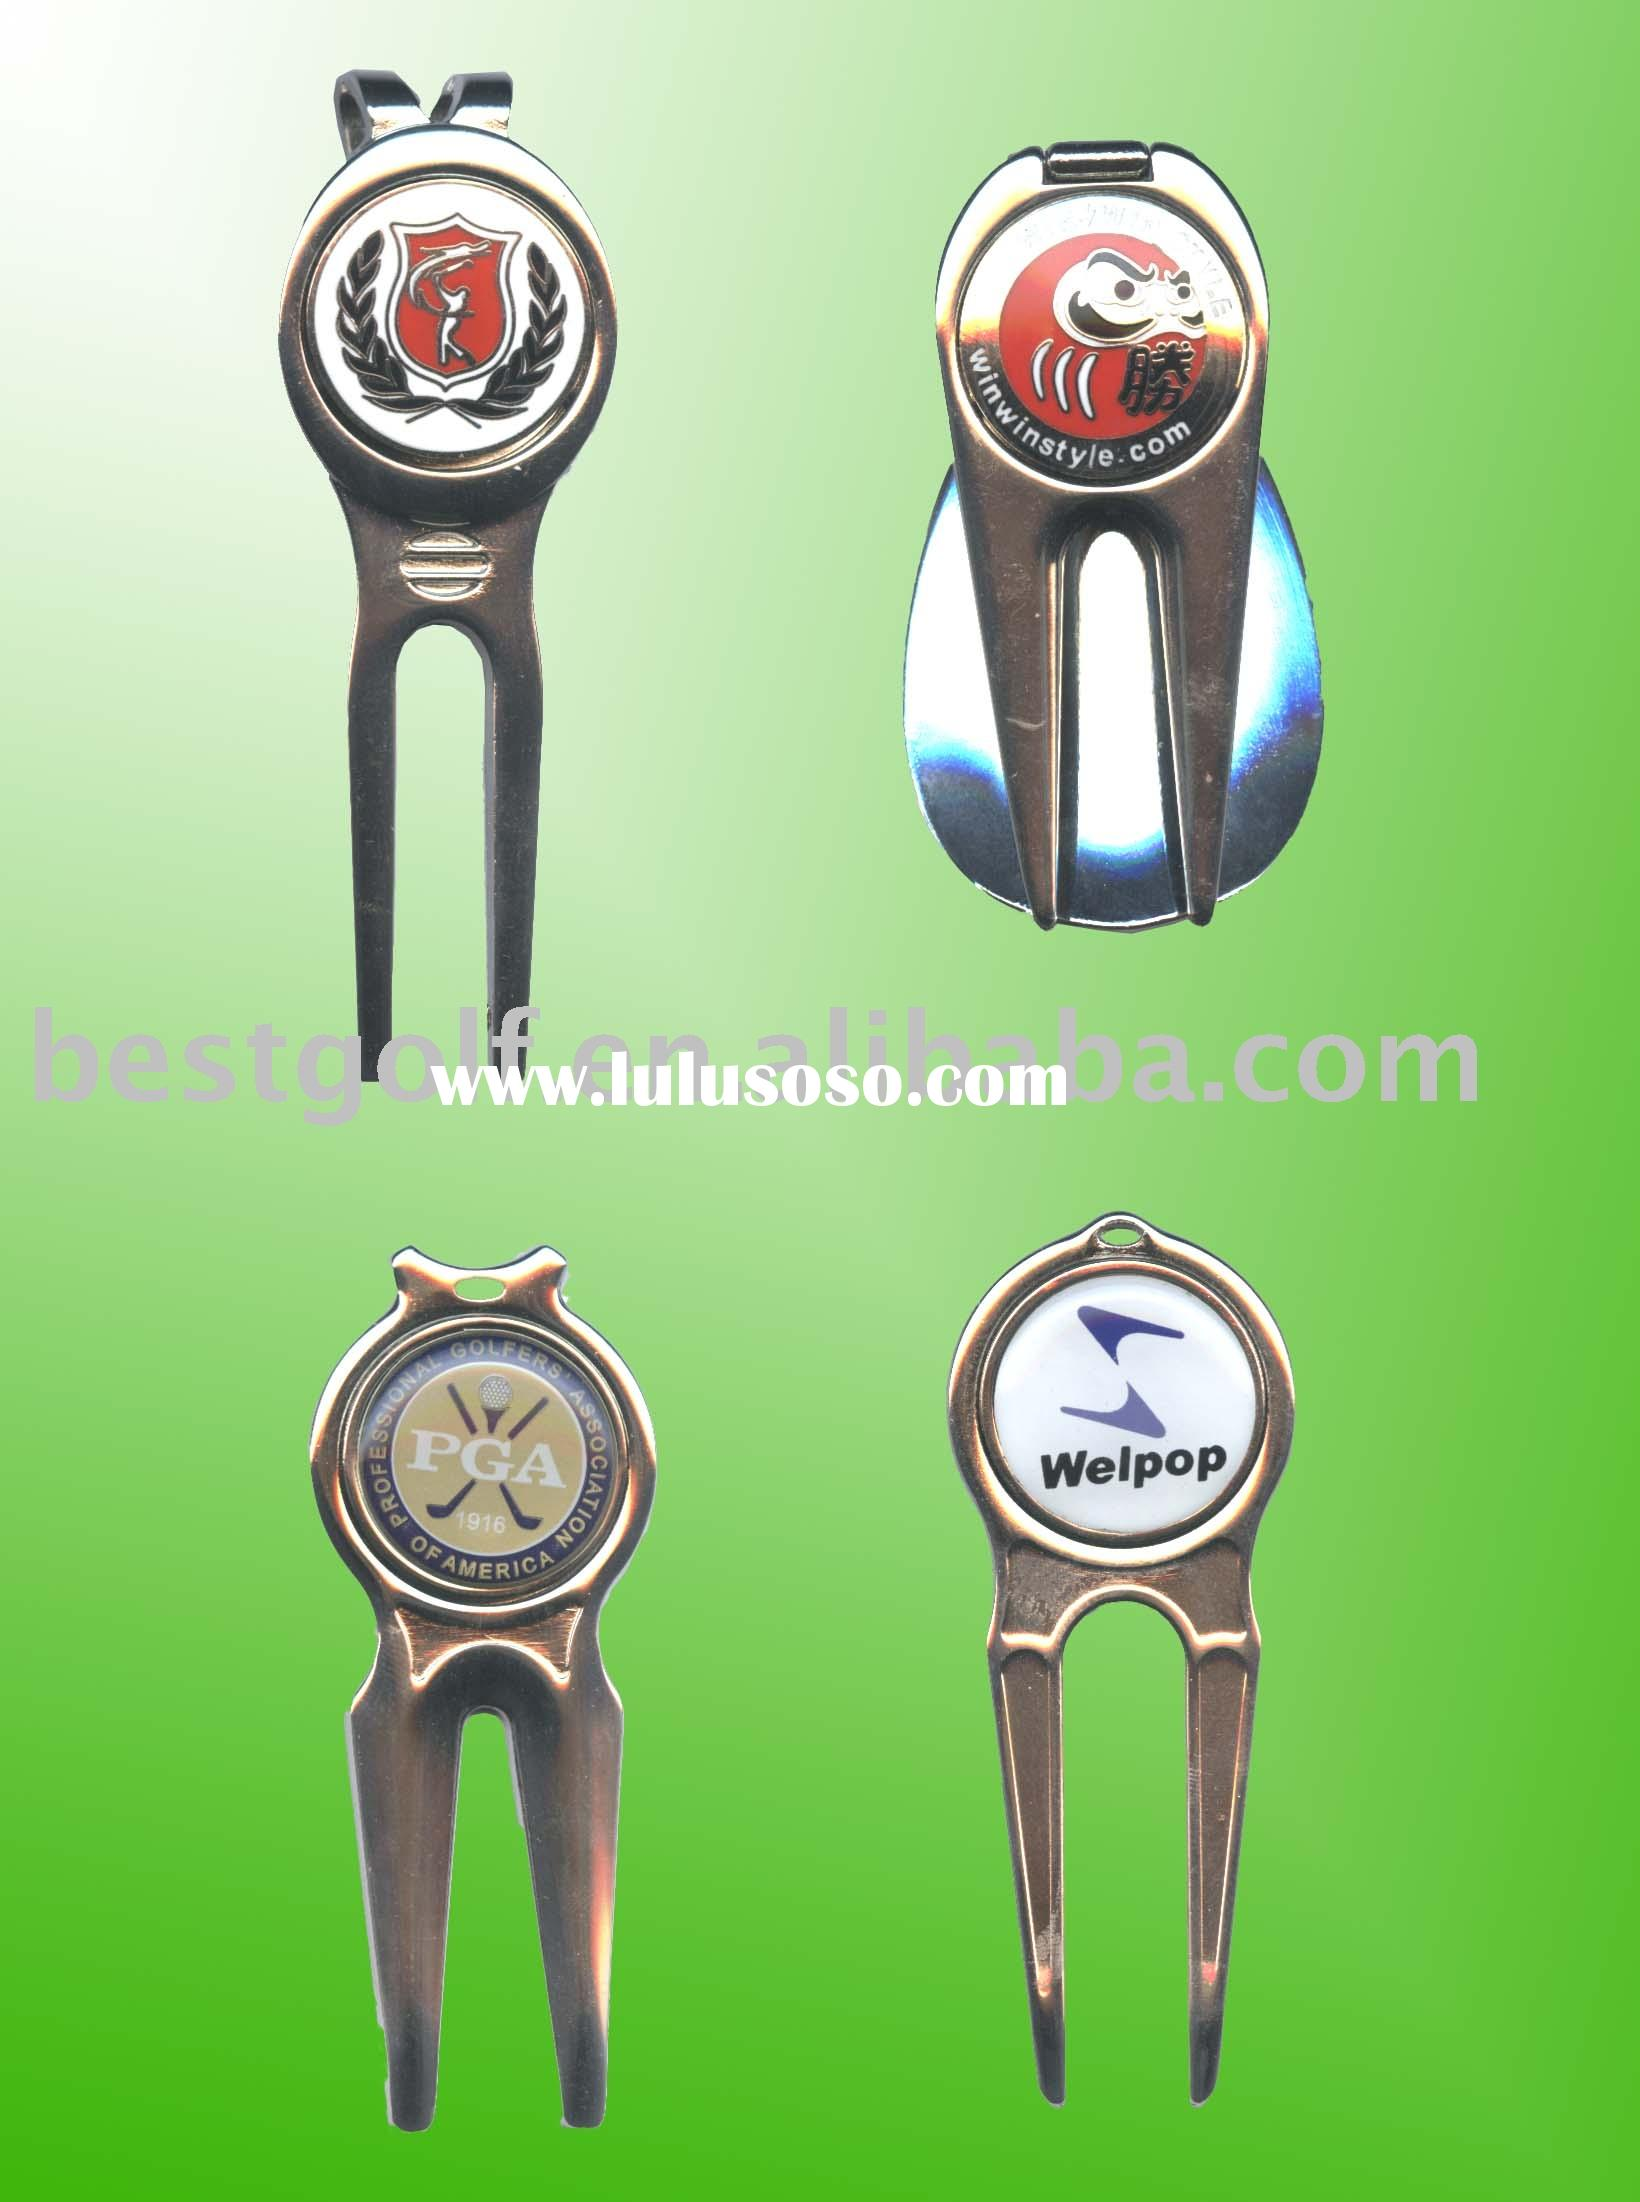 Metal golf divot tool with ball marker,golf pitch fork,golf product,golf accessory